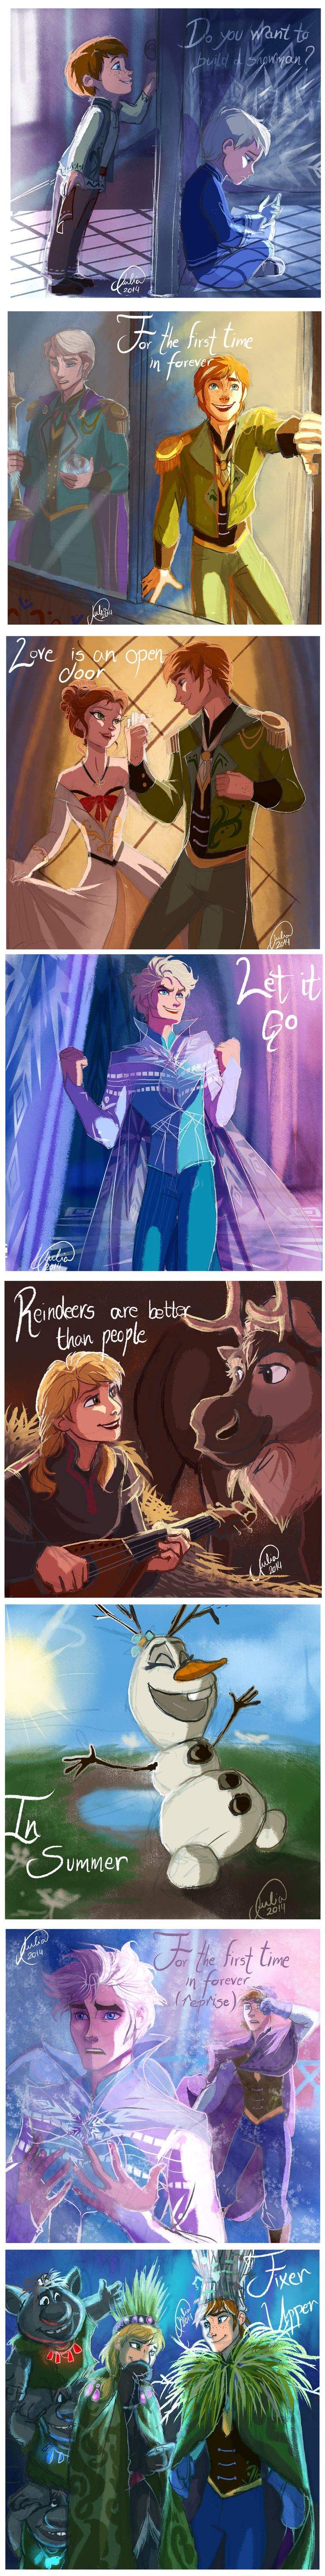 "Genderbend in ""Frozen"""